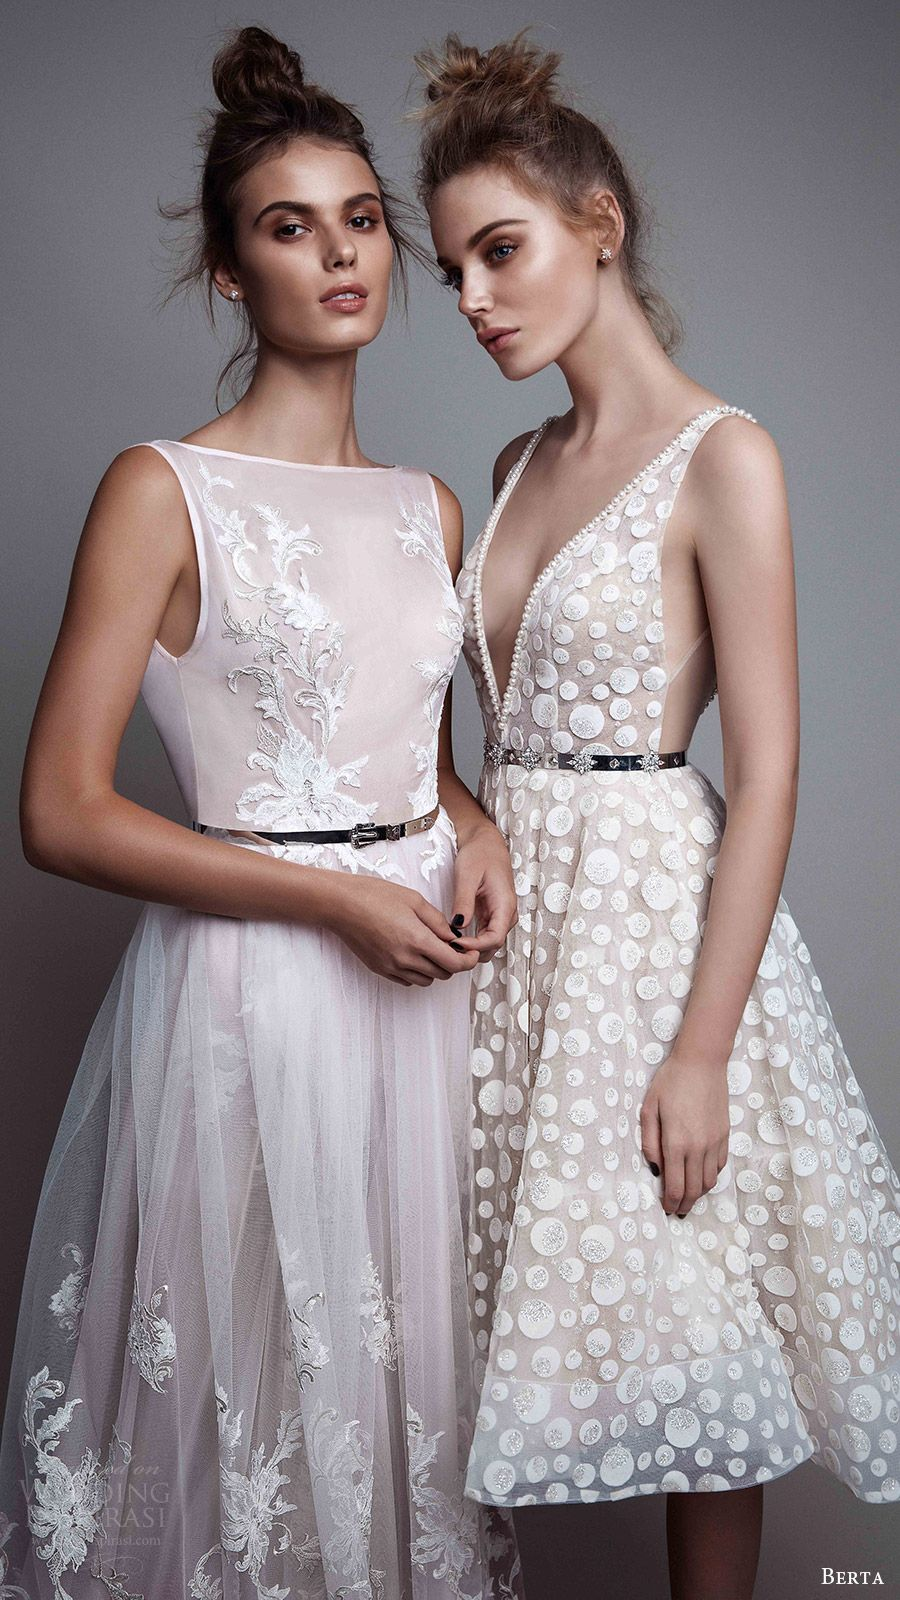 Berta Fall 2017 Ready-to-Wear Collection   High Fashion/Couture ...